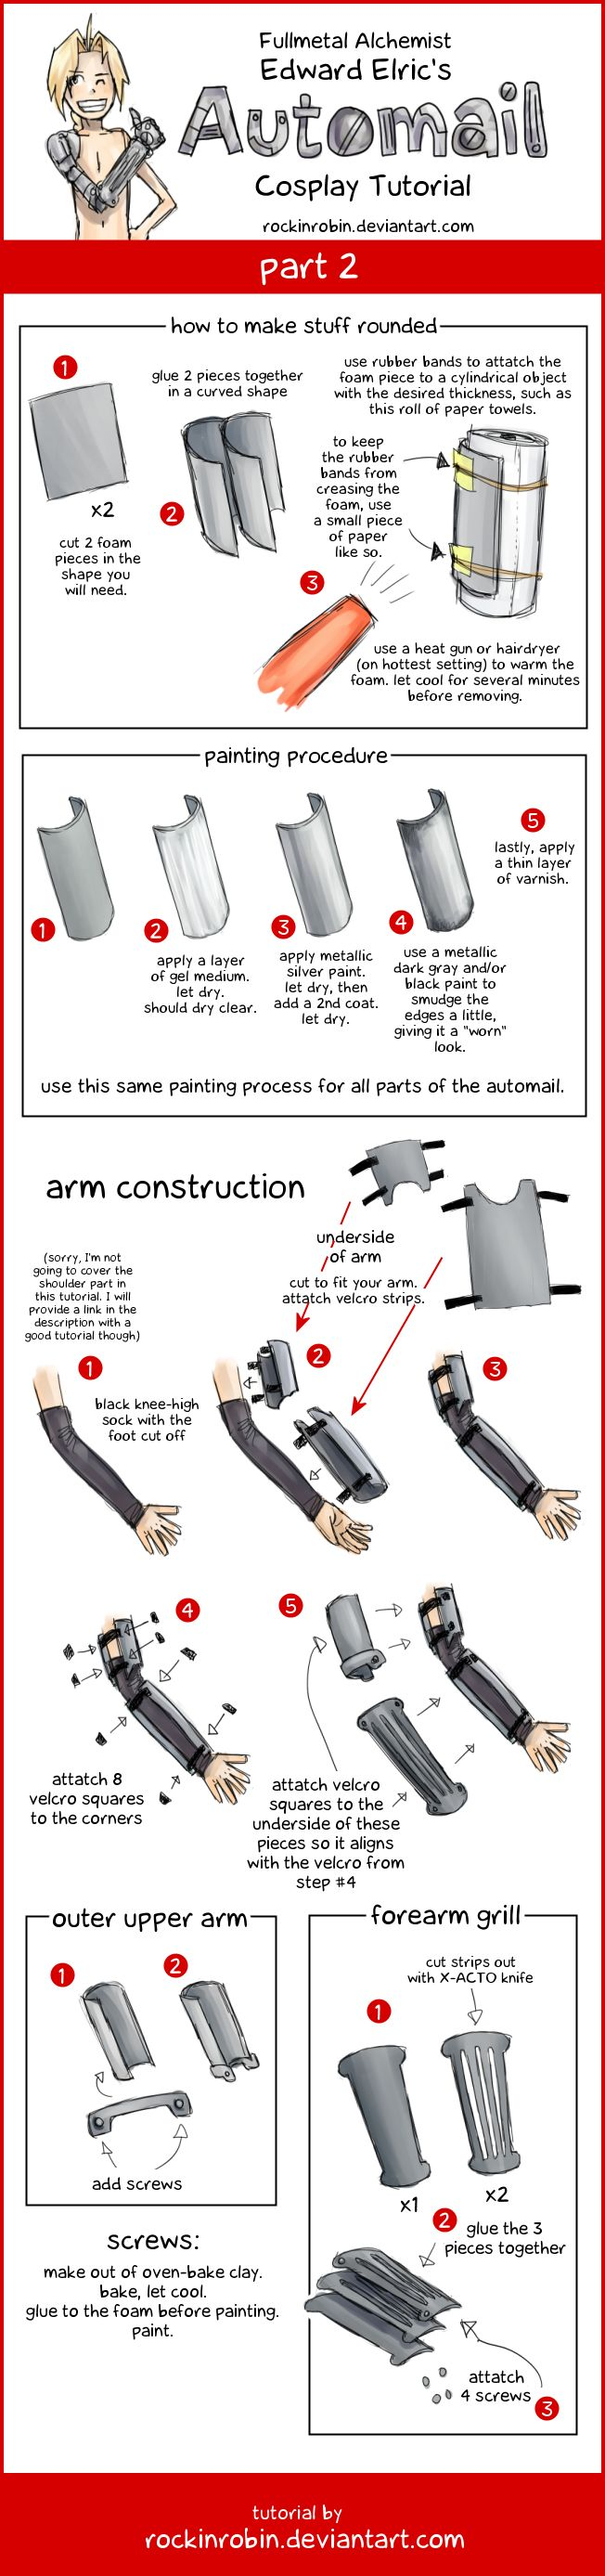 Cosplay Automail Tutorial 2 by rockinrobin on deviantART - Use this tutorial and change the design to make any other kind of mecha-prosthetics or armor.